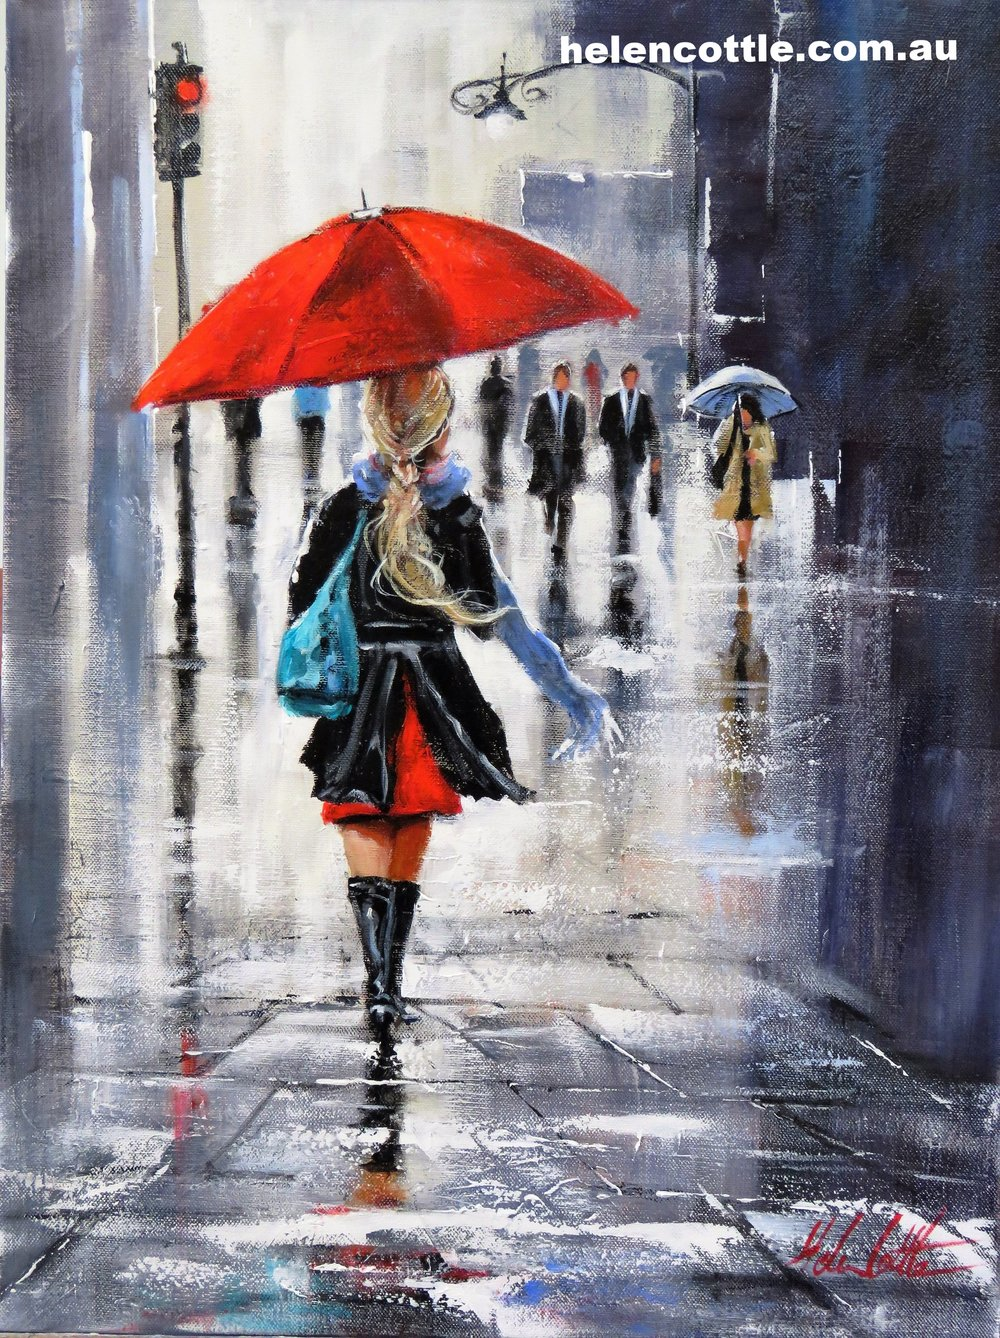 Rain in June Acrylic on canvas 75x55cm By Helen Cottle.JPG